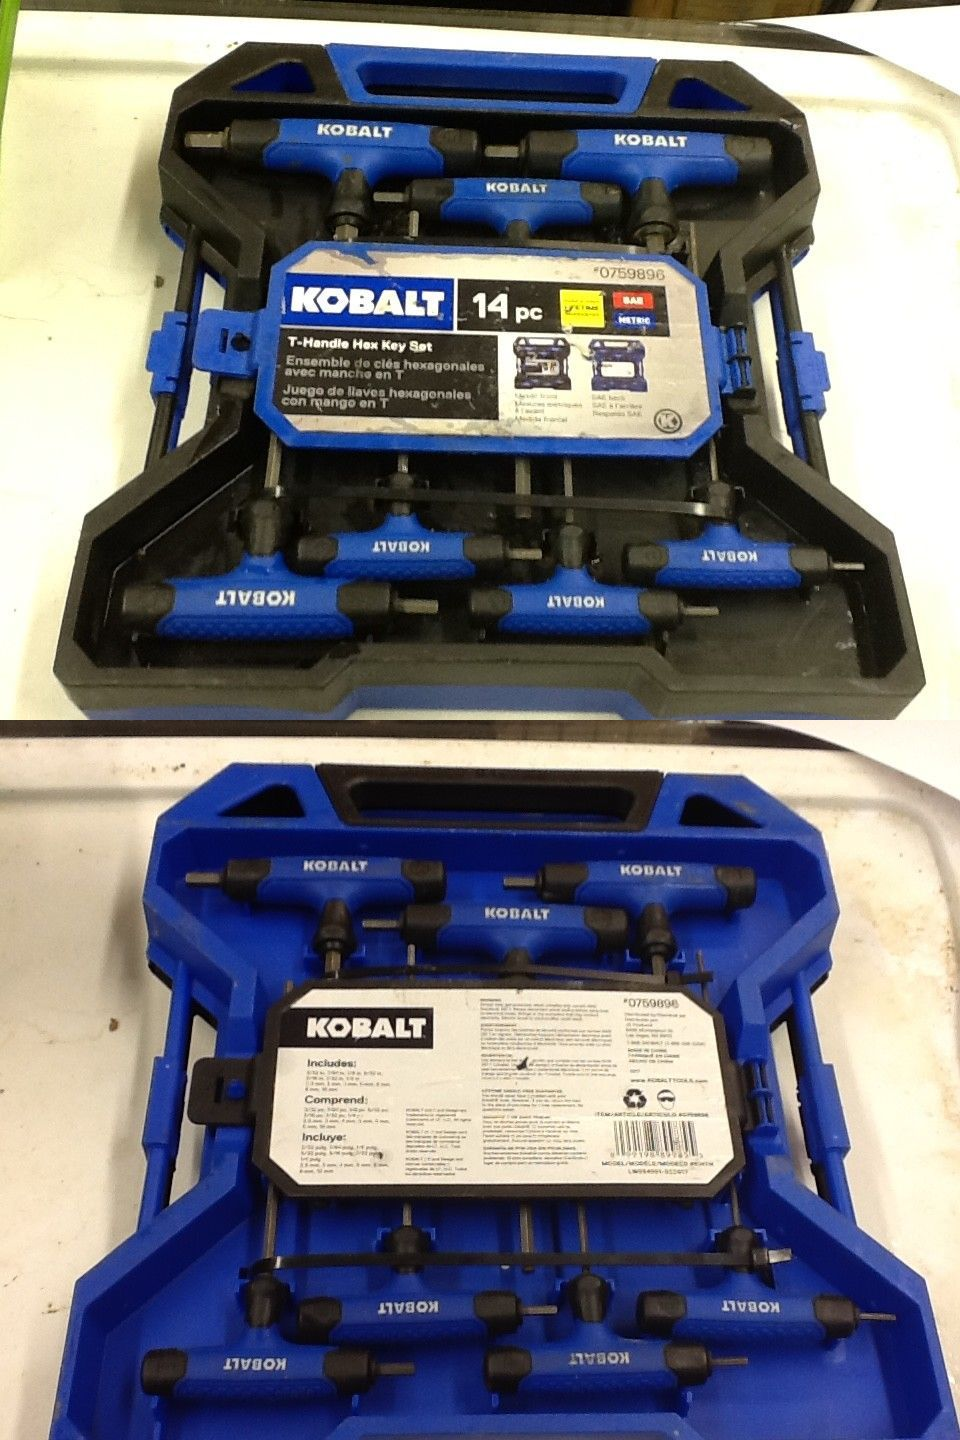 Hex Keys And Wrenches 42258 Kobalt 14 Piece T Handle Hex Key Set Buy It Now Only 31 99 On Ebay Wrenches Kobalt Piece Hex Key Hex Ebay